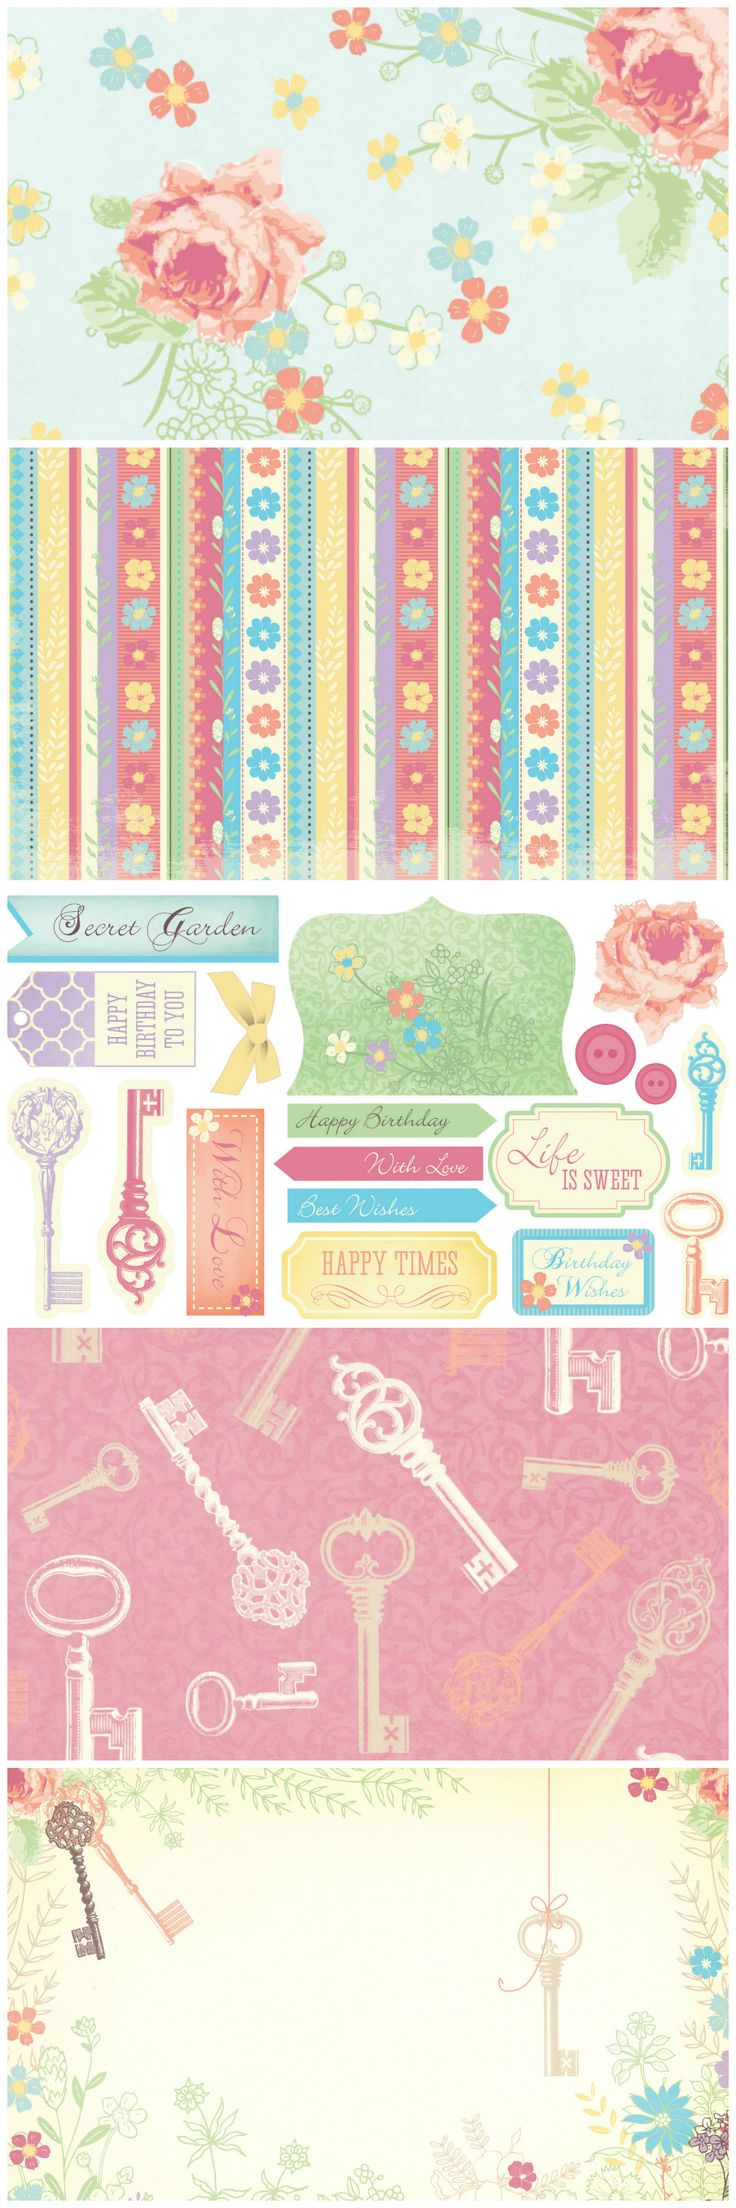 Scrapbook ideas printable - Be Enchanted By Our Free Secret Garden Printable Papers And Card Toppers